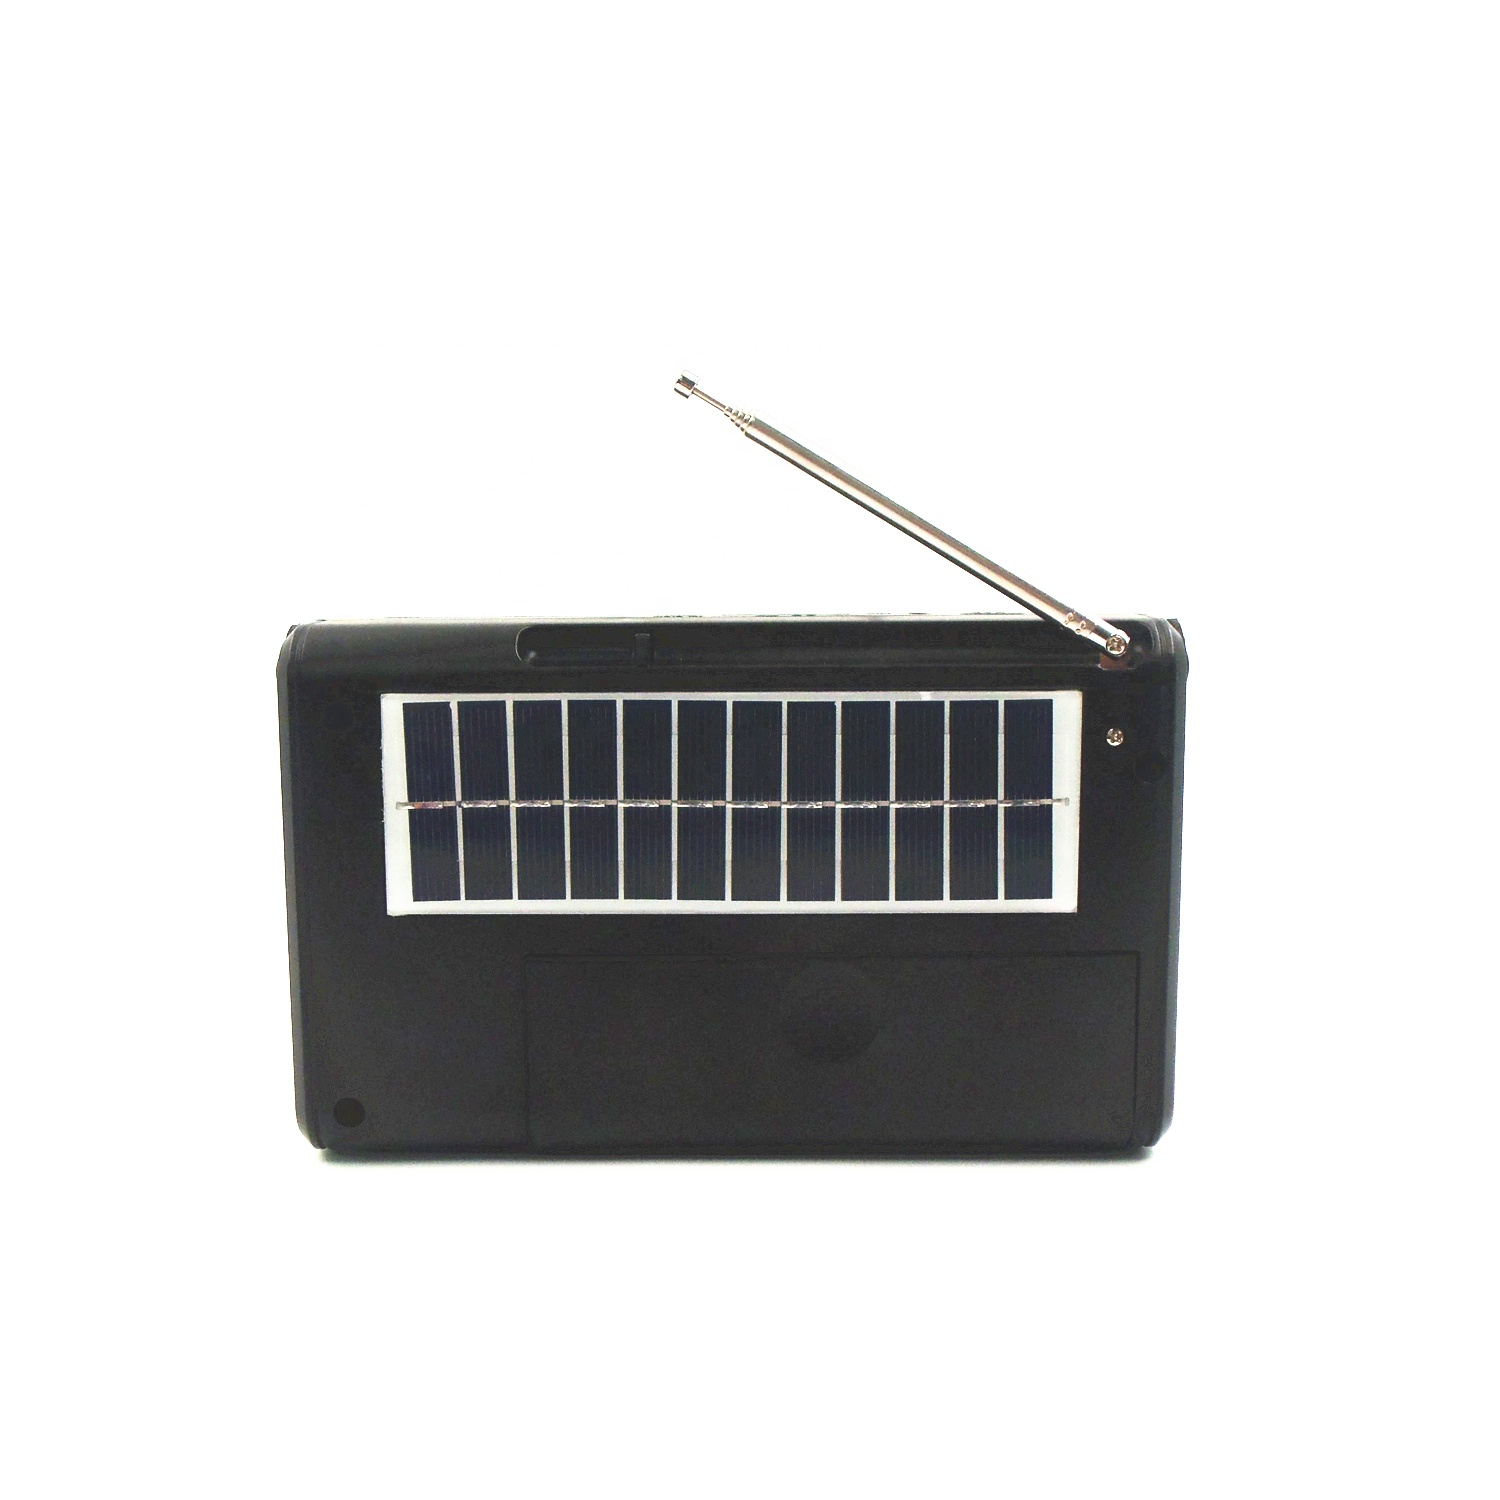 LED Display Am Fm Solar Radio Recorder With SD Card Slot And MP3 Function